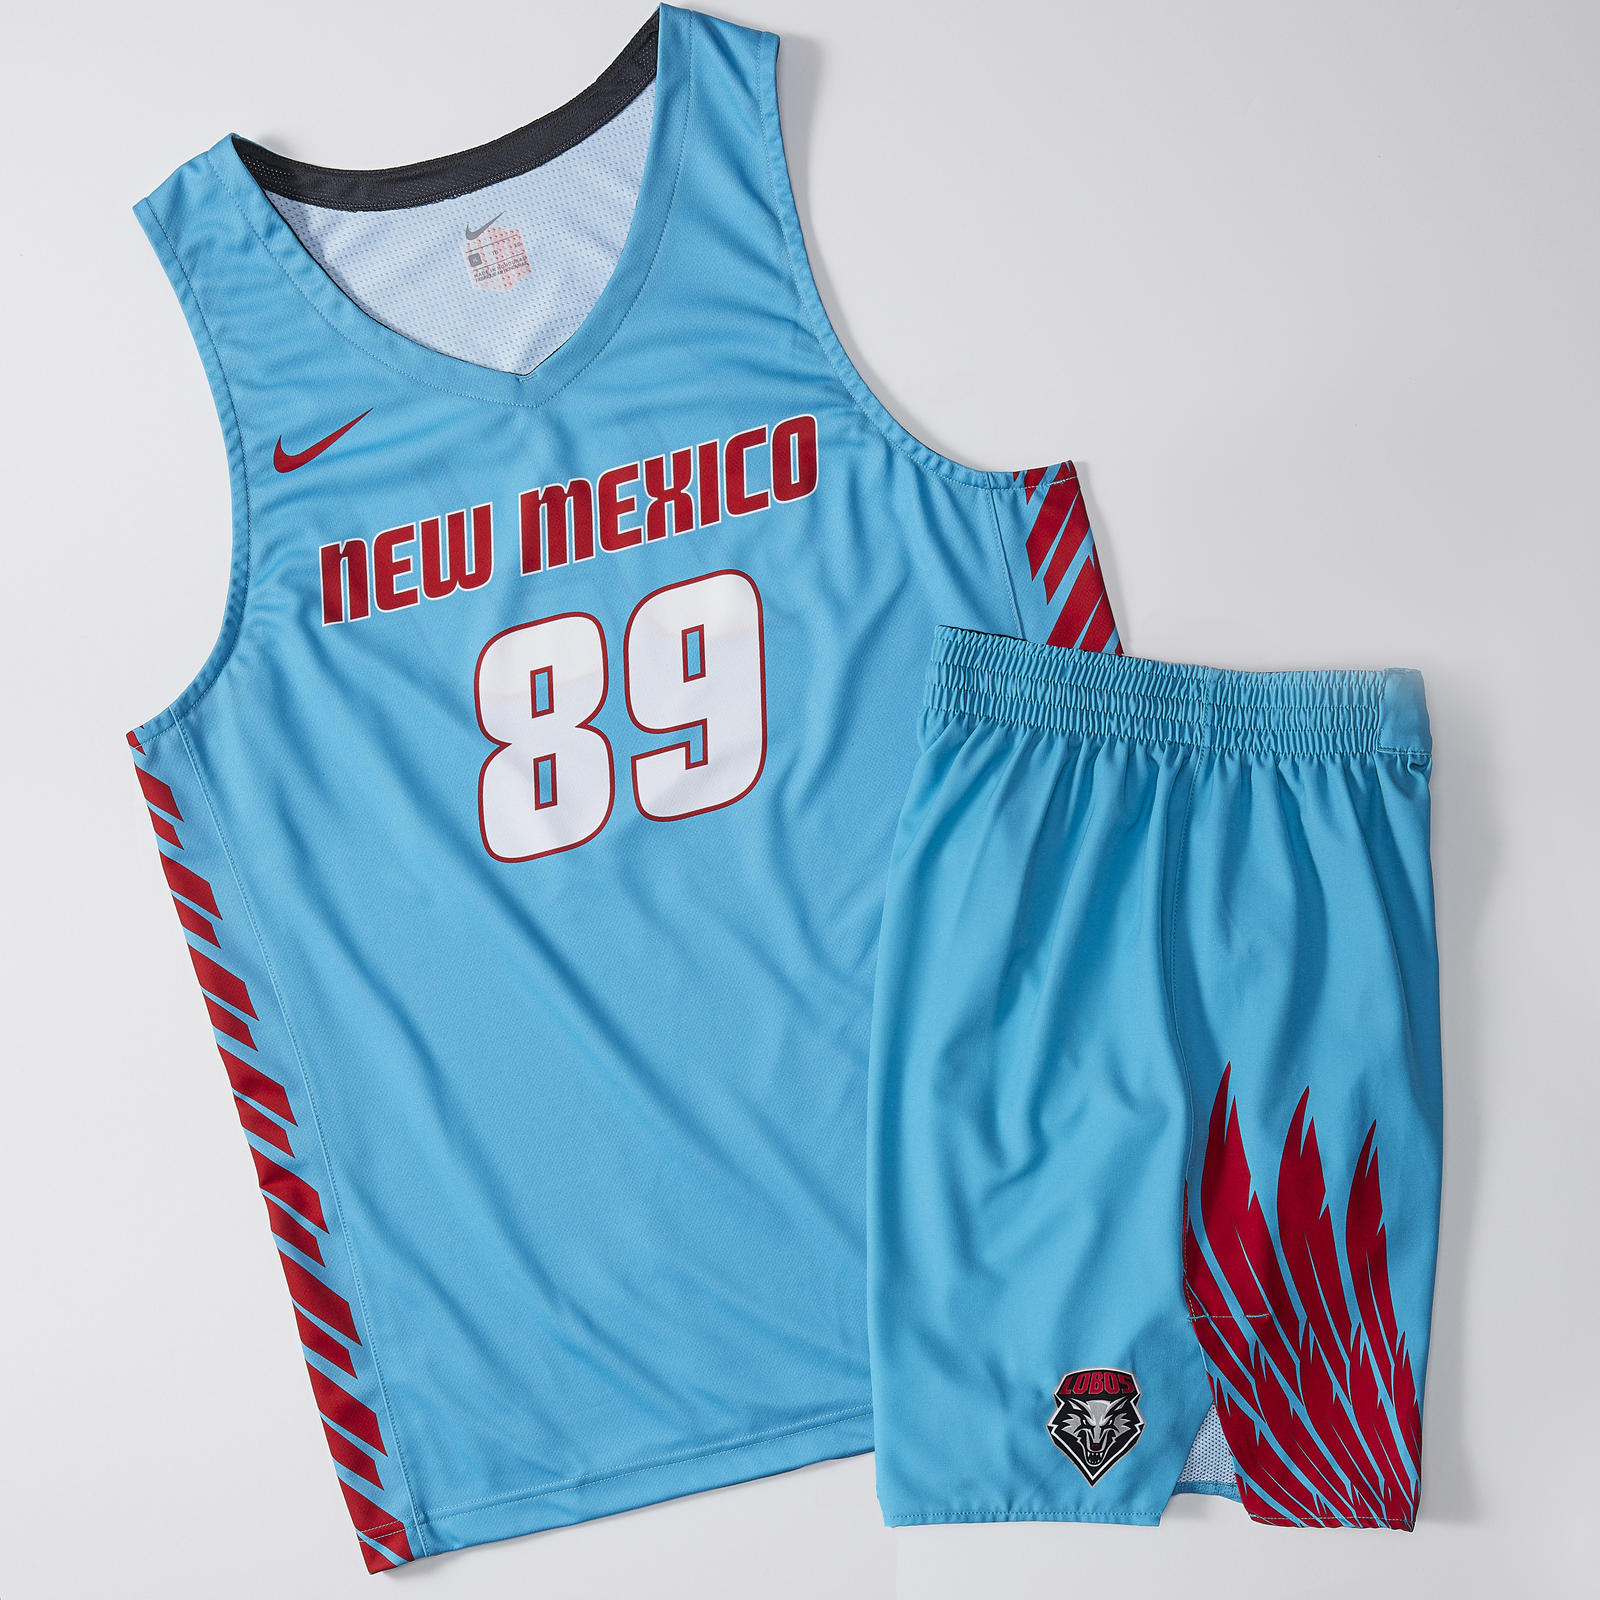 540d05ecb89 The Nike N7 College Basketball Uniform  More Than A Turquoise Jersey 11